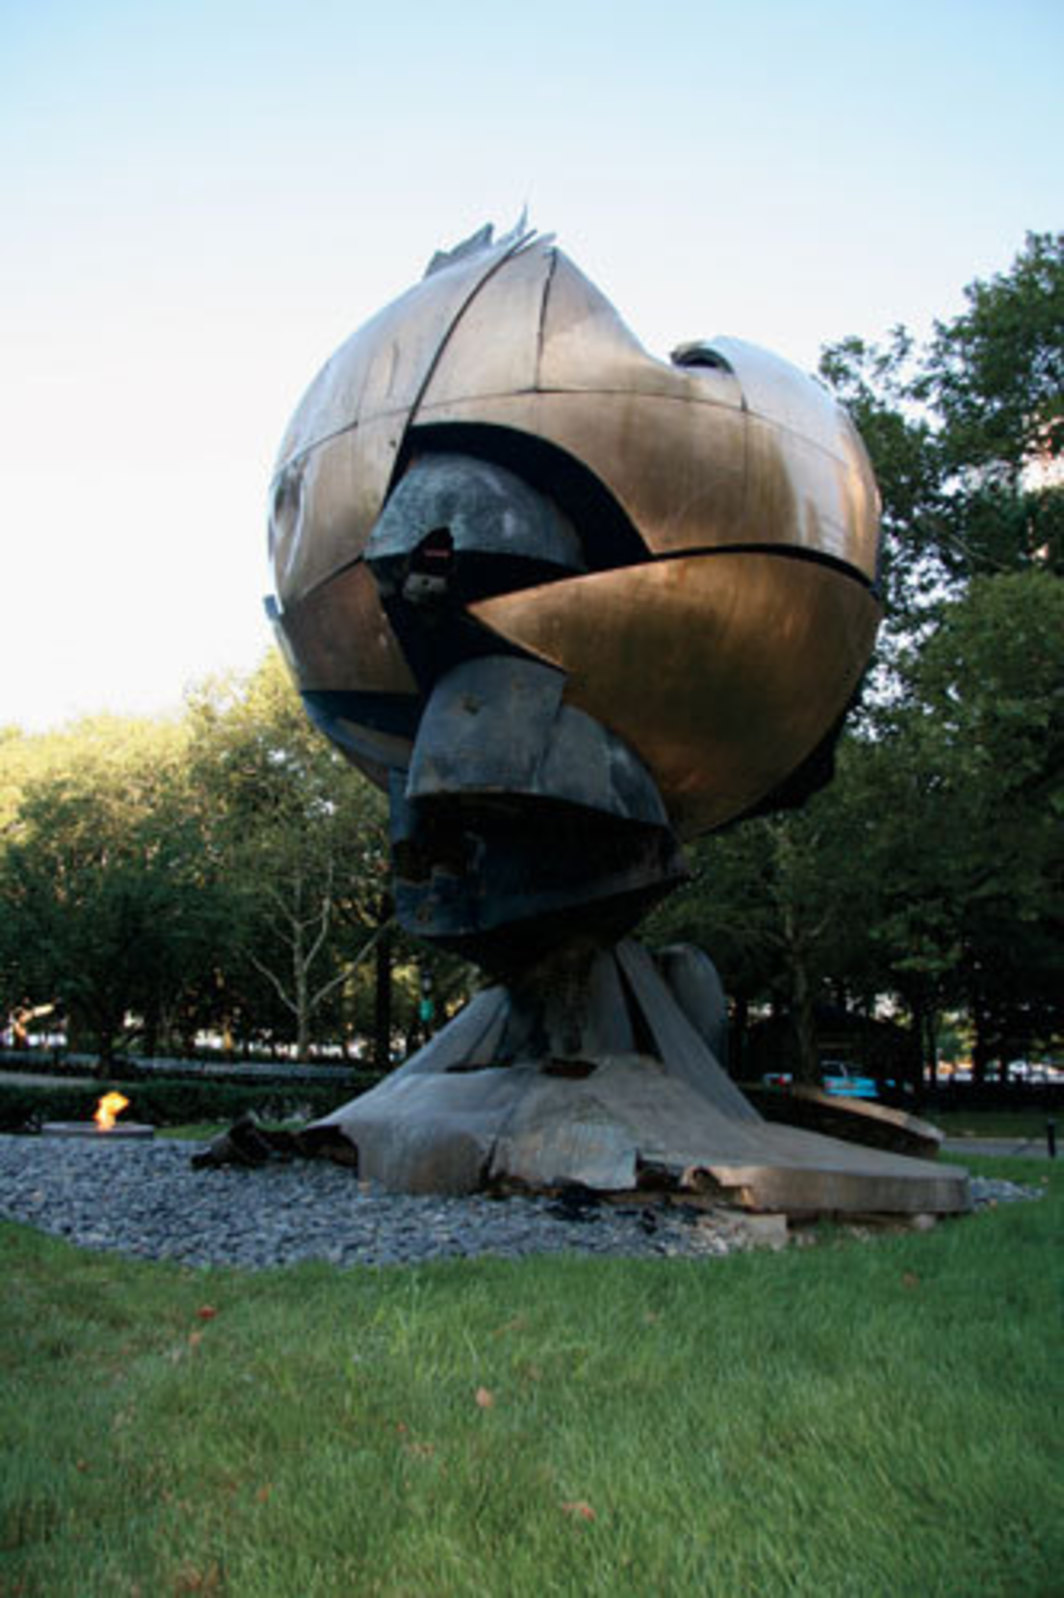 Fritz Koenig, The Sphere, 1971, bronze on granite base, approx. 25 x 25 x 25'. Battery Park, New York. Photo: Joseph Logan and Aimée Scala, 2009.